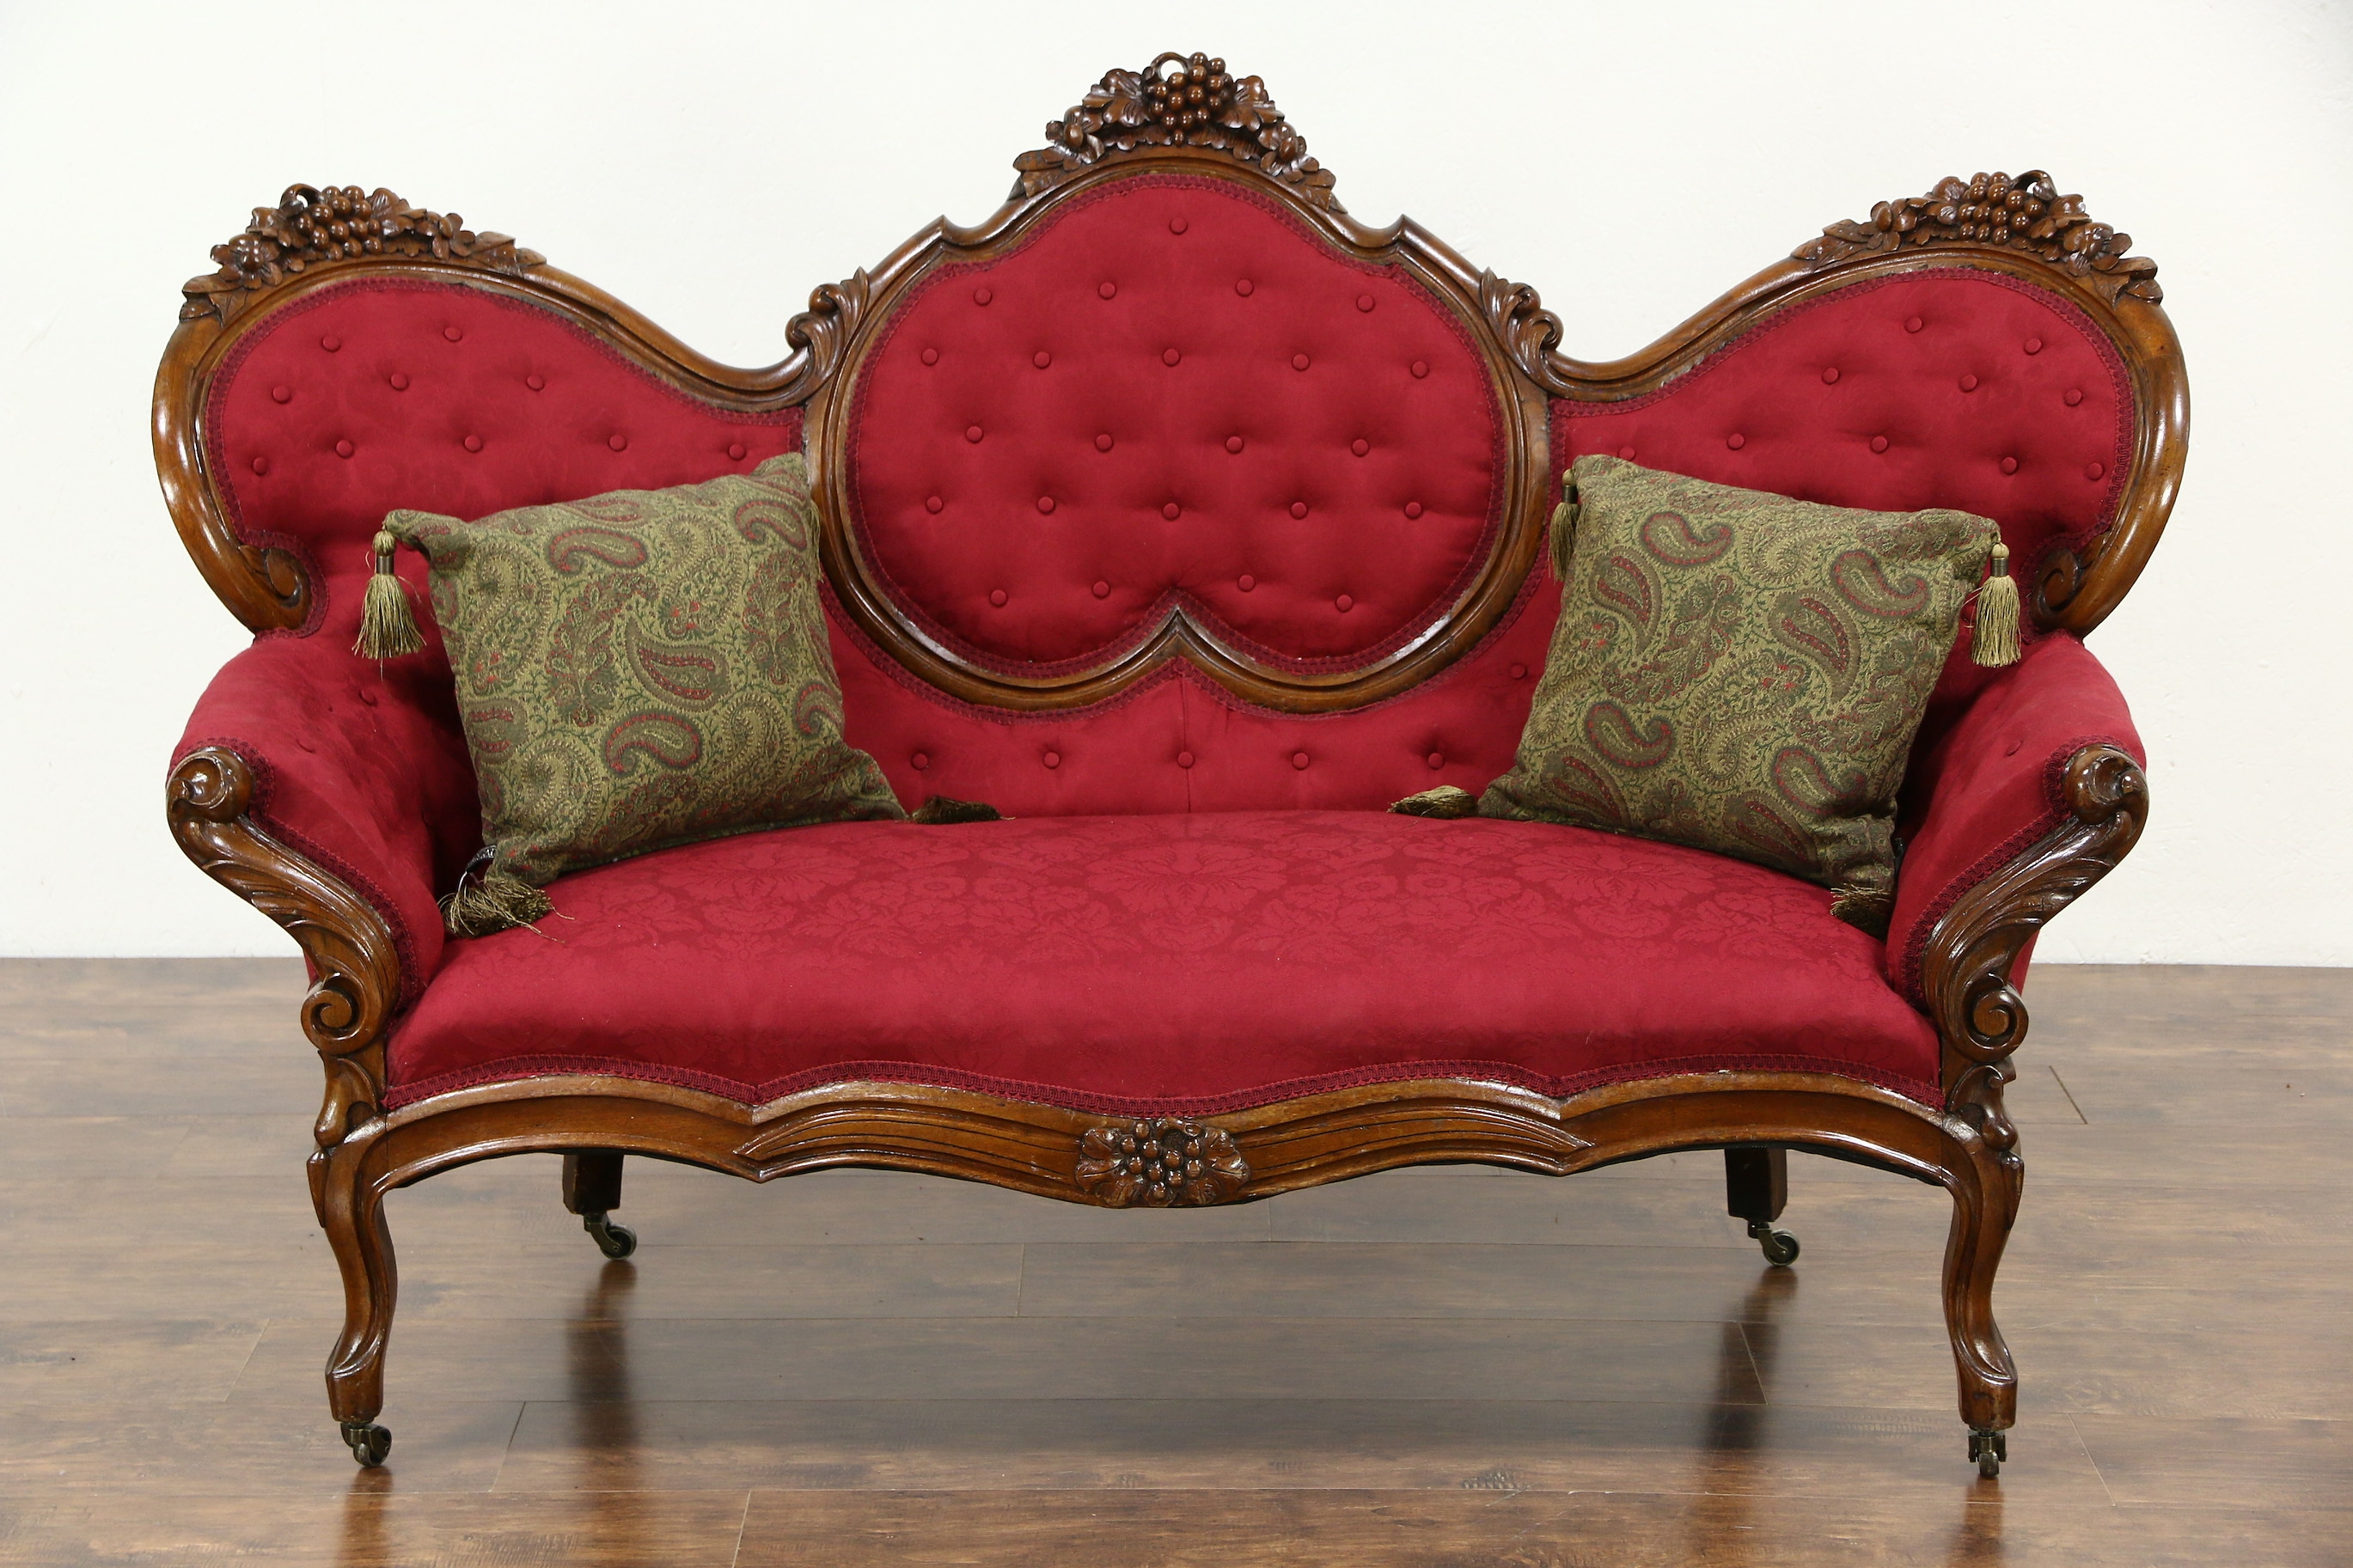 Sold Victorian 1860s Antique Grape Carved Walnut Sofa New Throughout Antique Sofa Chairs (Image 15 of 15)